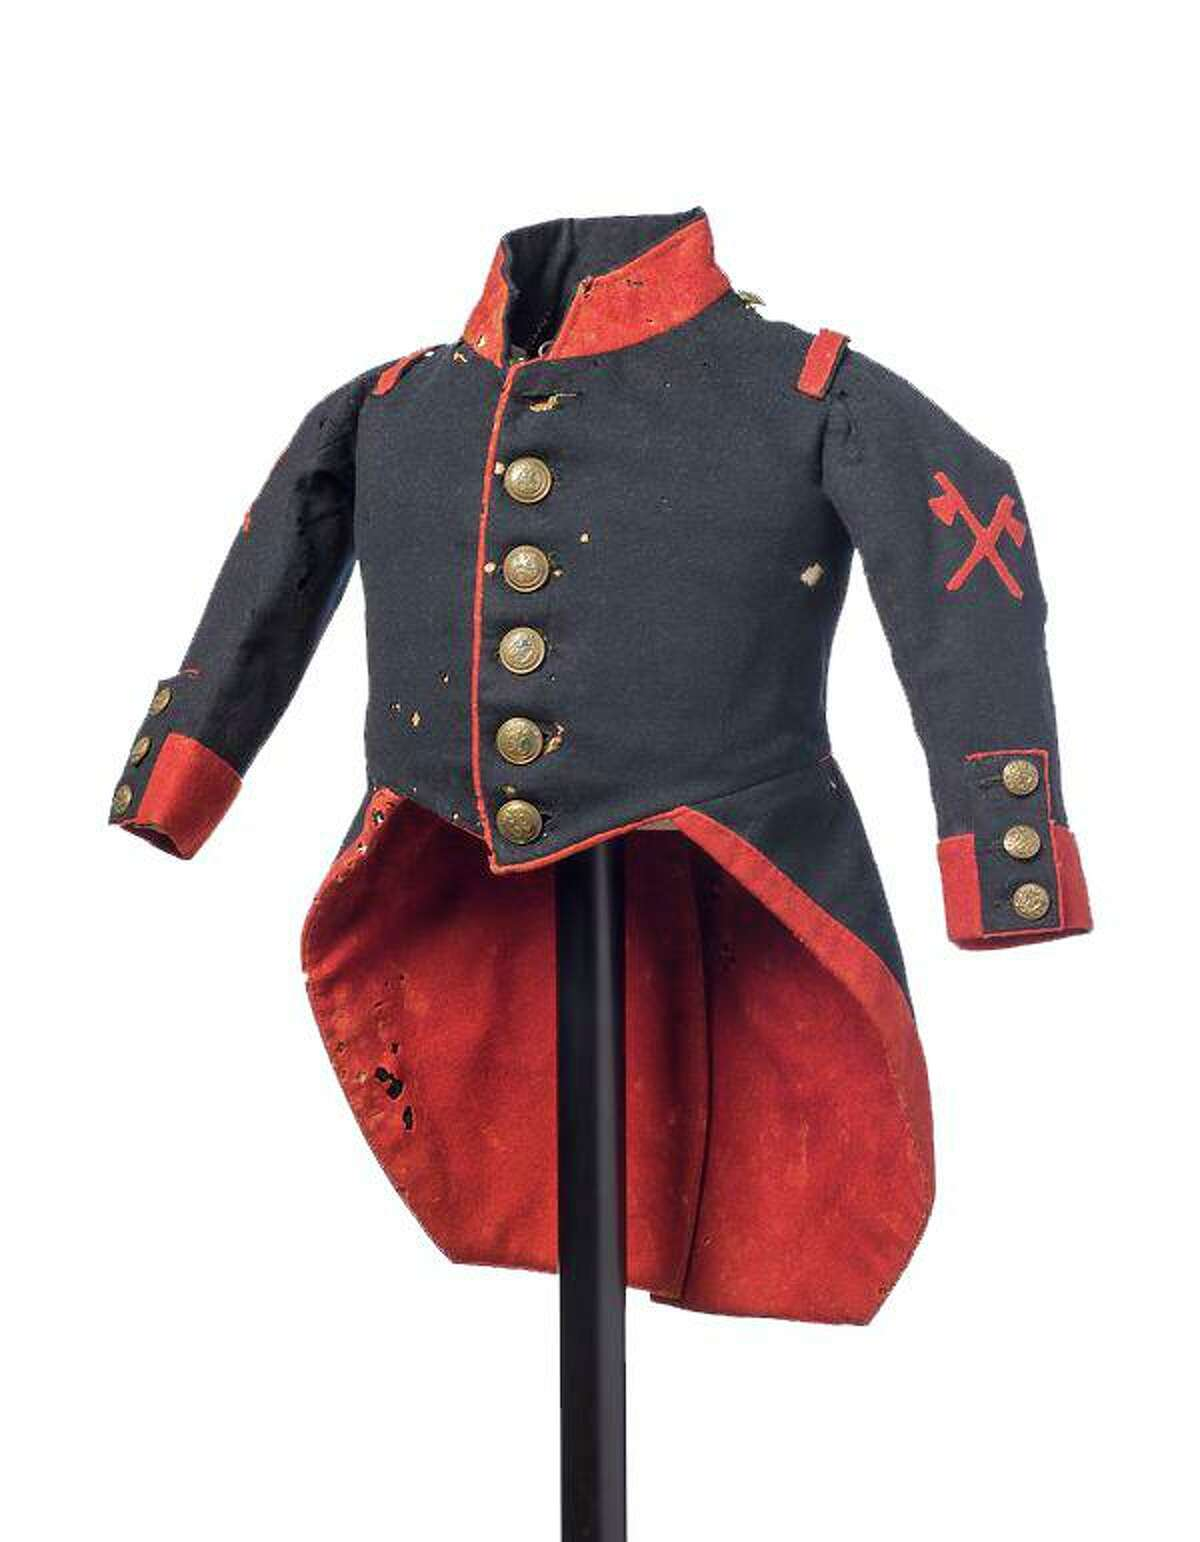 Barnum Museum curatorAdrienne Saint-Pierre said one her favorite items in the collection is a jacket worn by Gen. Tom Thumb.